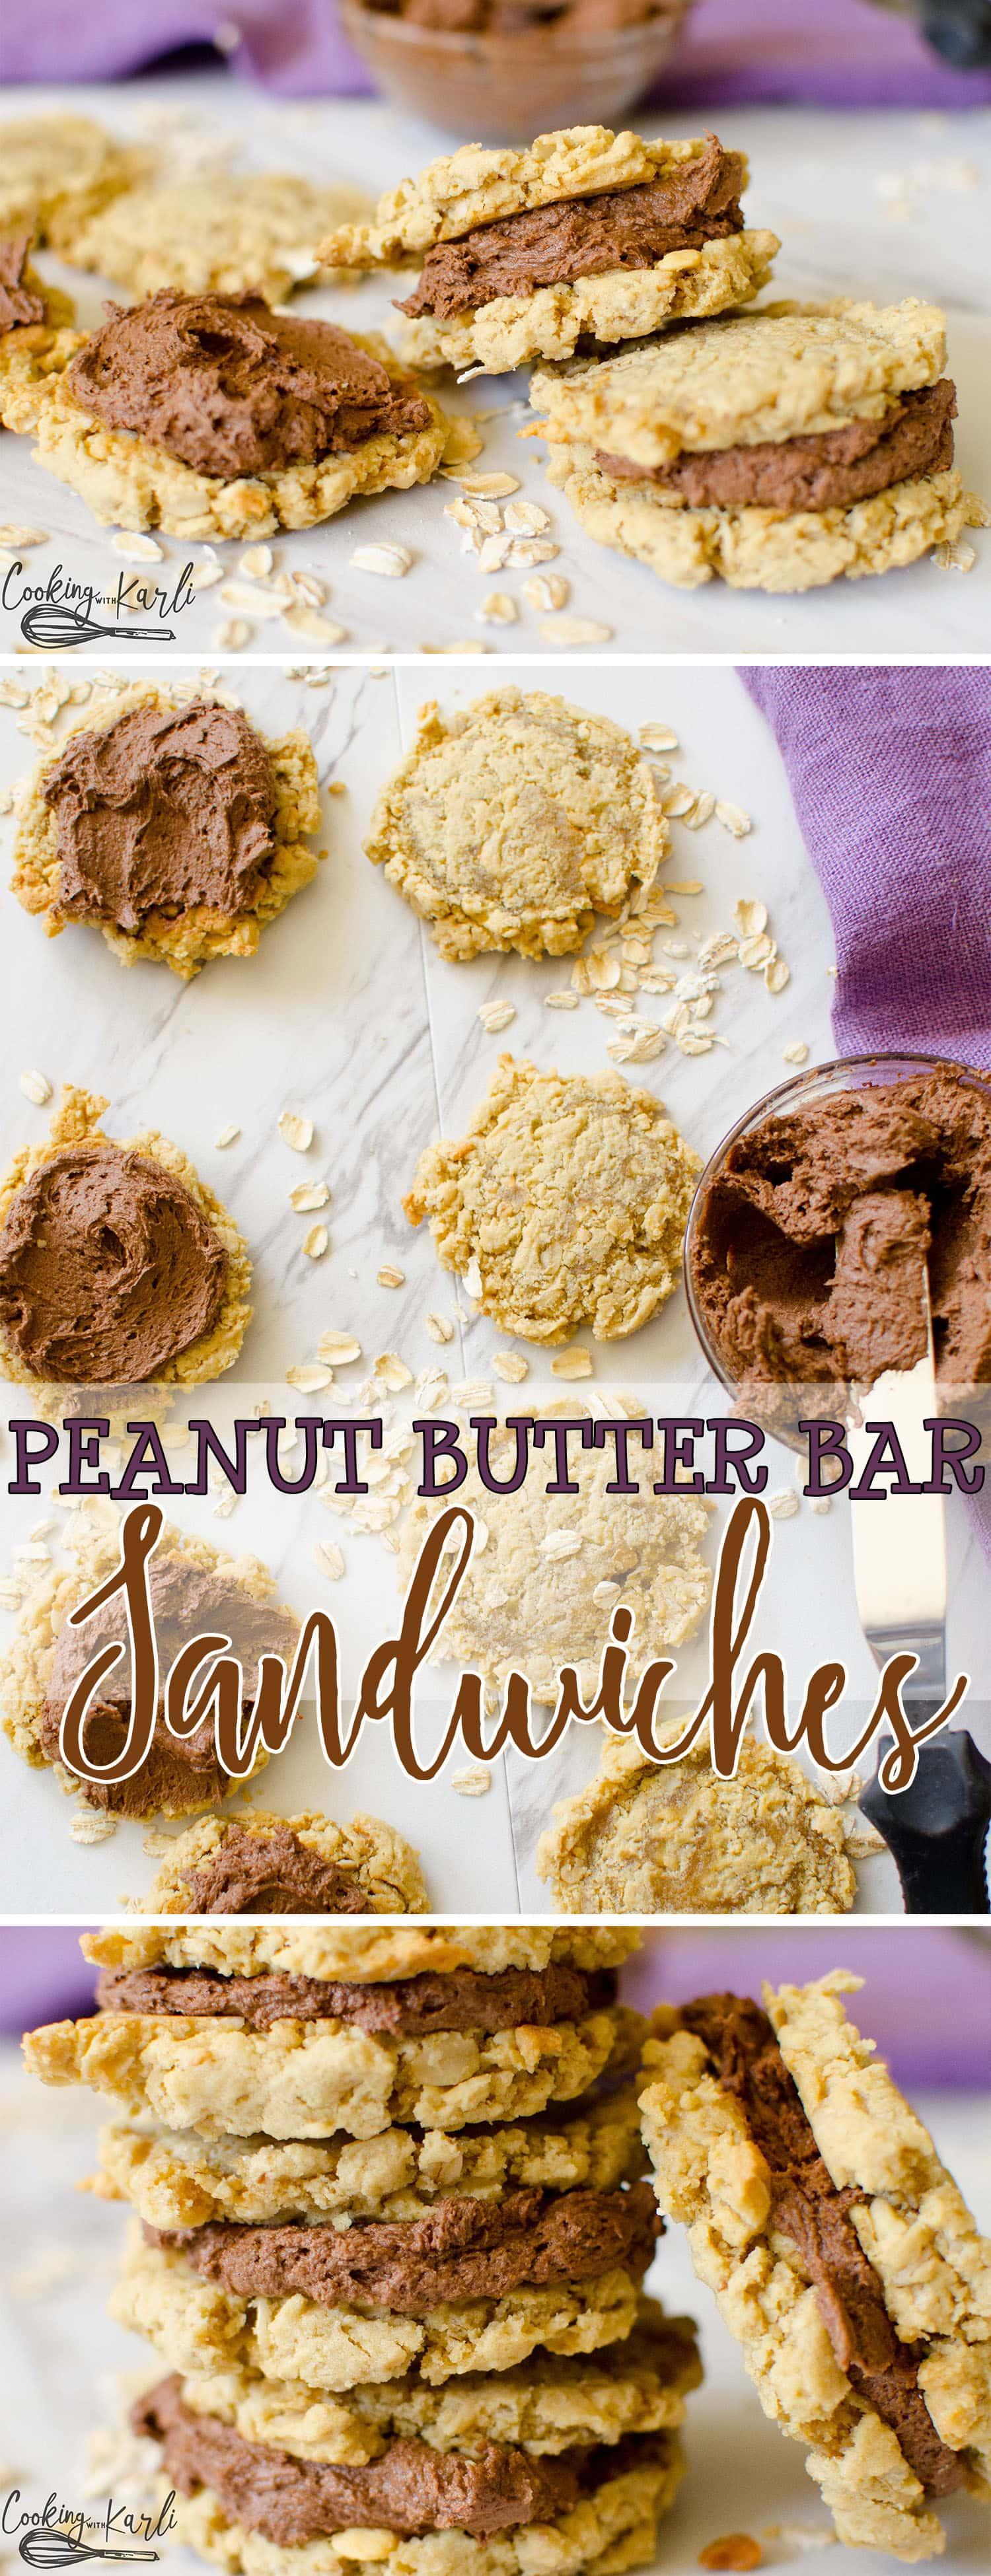 Peanut Butter Chocolate Sandwich Cookies are rich chocolate buttercream sandwiched between two chewy peanut butter oatmeal cookies. These are just like a good old fashioned peanut butter bar, just in sandwich form! |Cooking with Karli| #peanutbutterbars #lunchlady #peanutbutter #chocolate #buttercream #recipe #dessert #sandwich #cookie